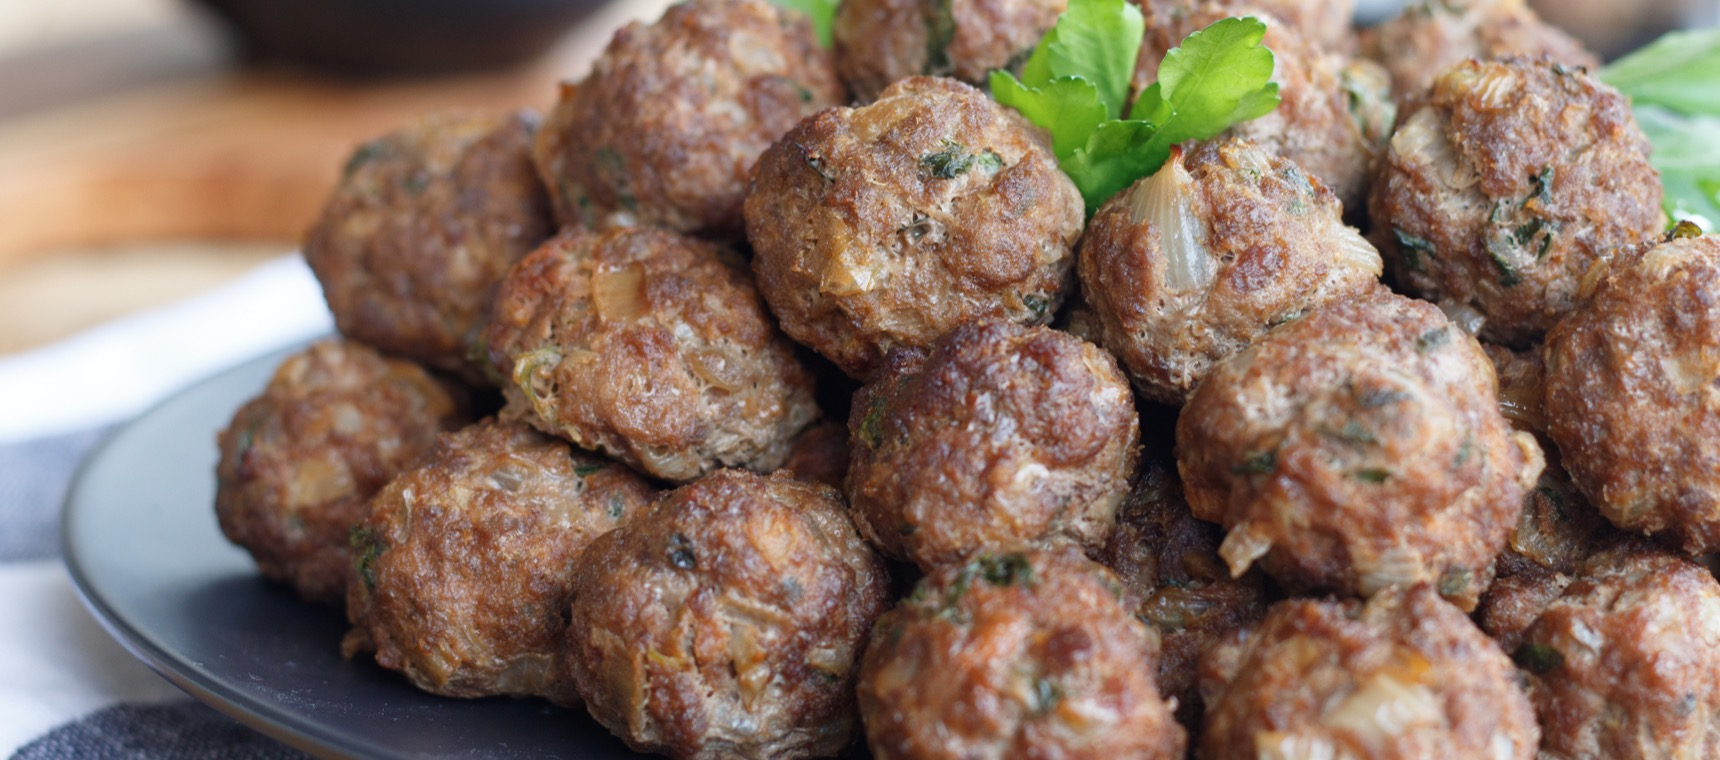 Caramelised Onion and Beef Meatballs